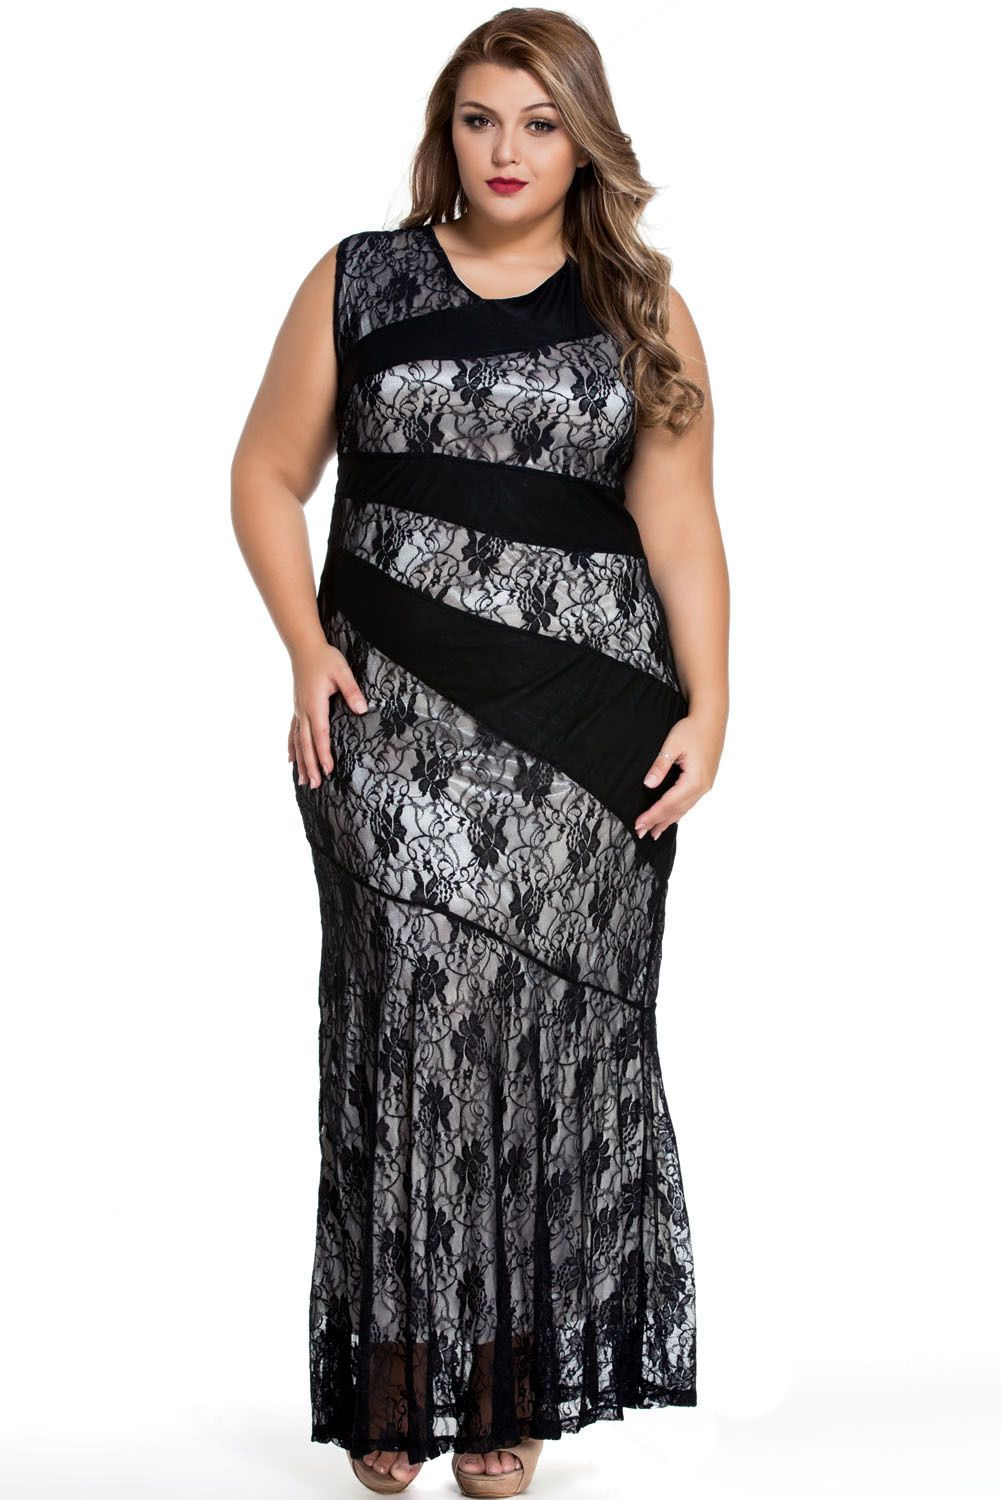 Awesome awesome lace formal evening party prom bridesmaids wedding